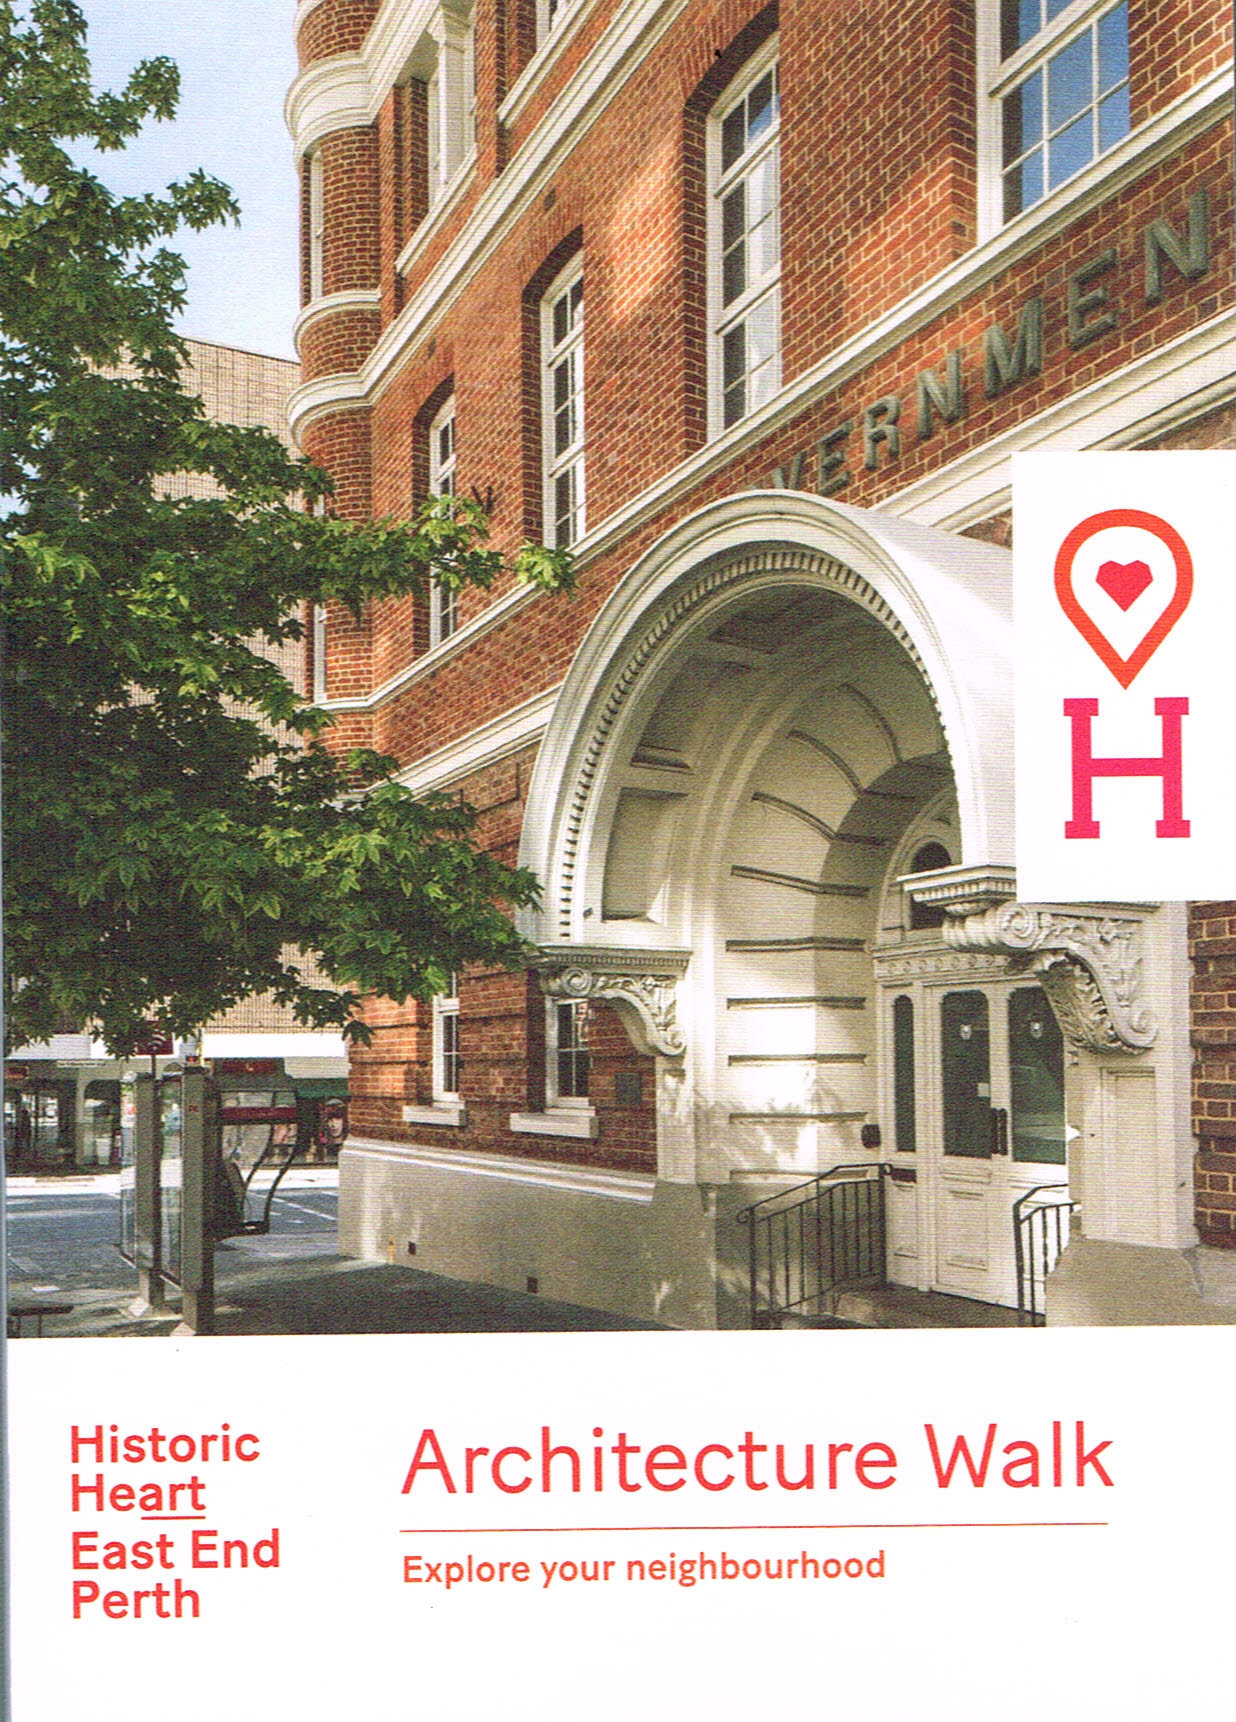 Architecture walk: historic heart East End Perth: explore your neighborhood  Perth Festival.